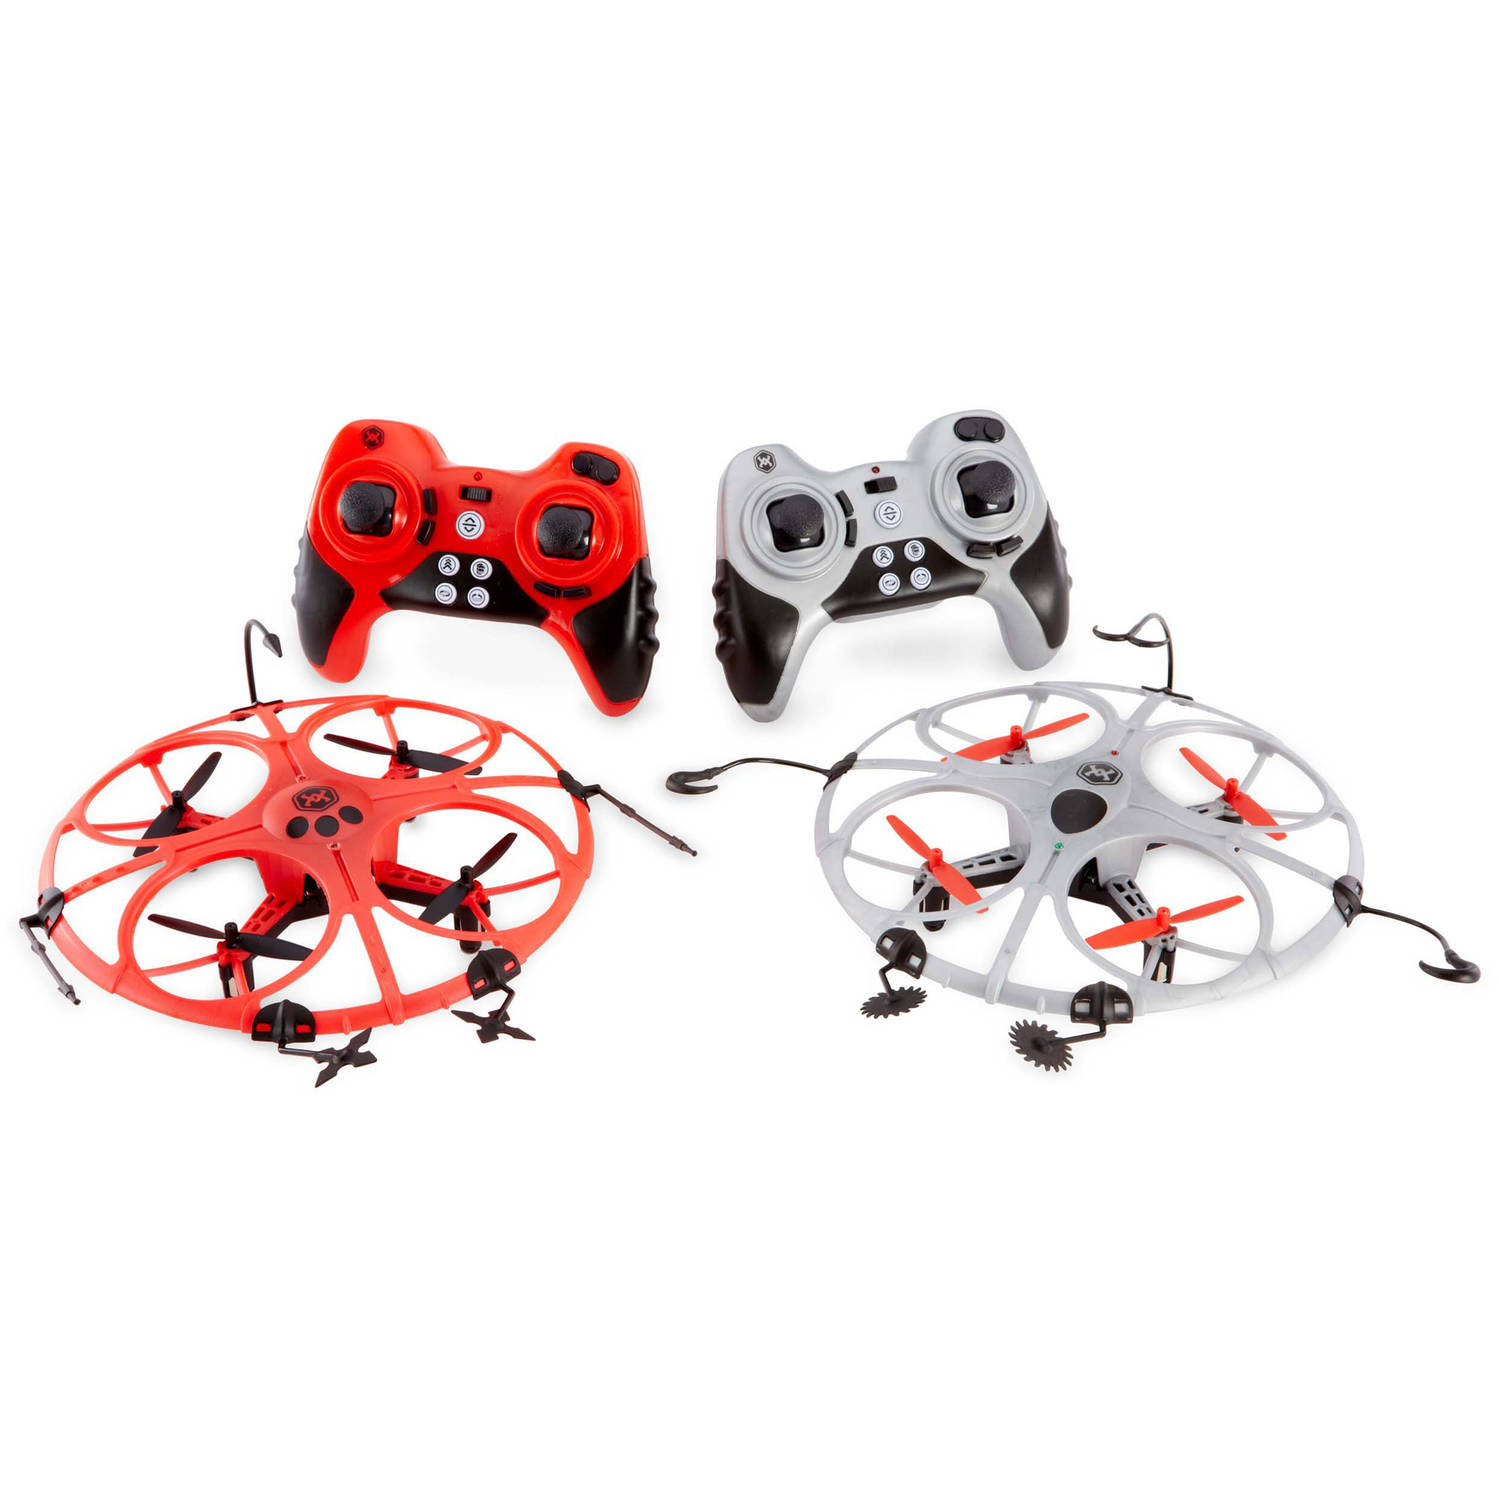 Air Wars 2.4GHz Battle Drones, Pack of 2 by MGA Entertainment